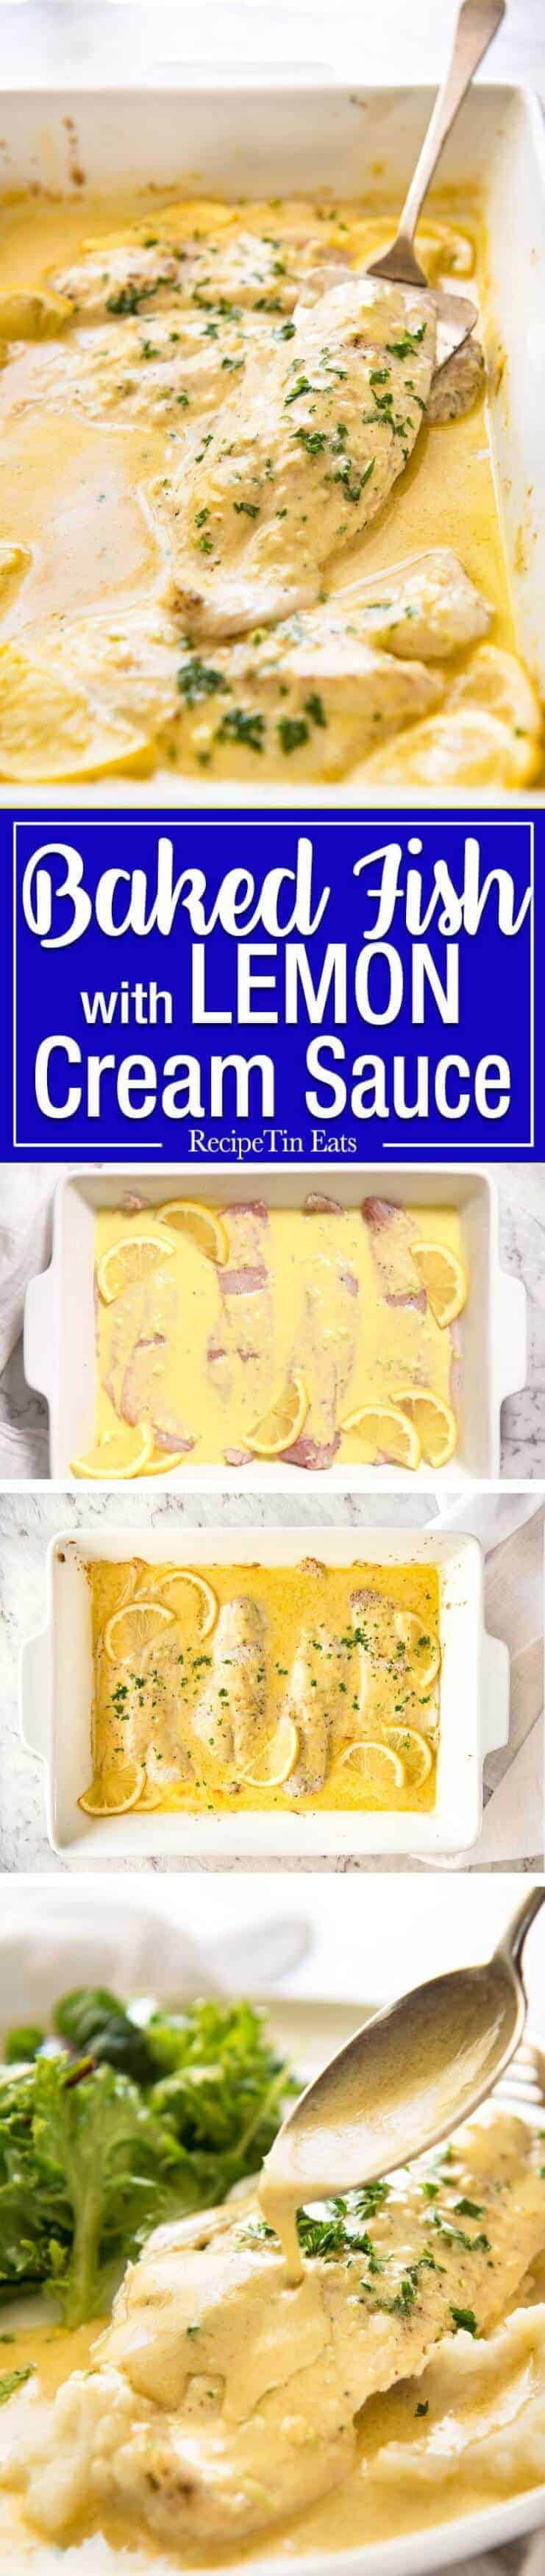 This Baked Fish with Lemon Cream Sauce is all made in one baking dish! Dinner on the table in 15 minutes. recipetineats.com